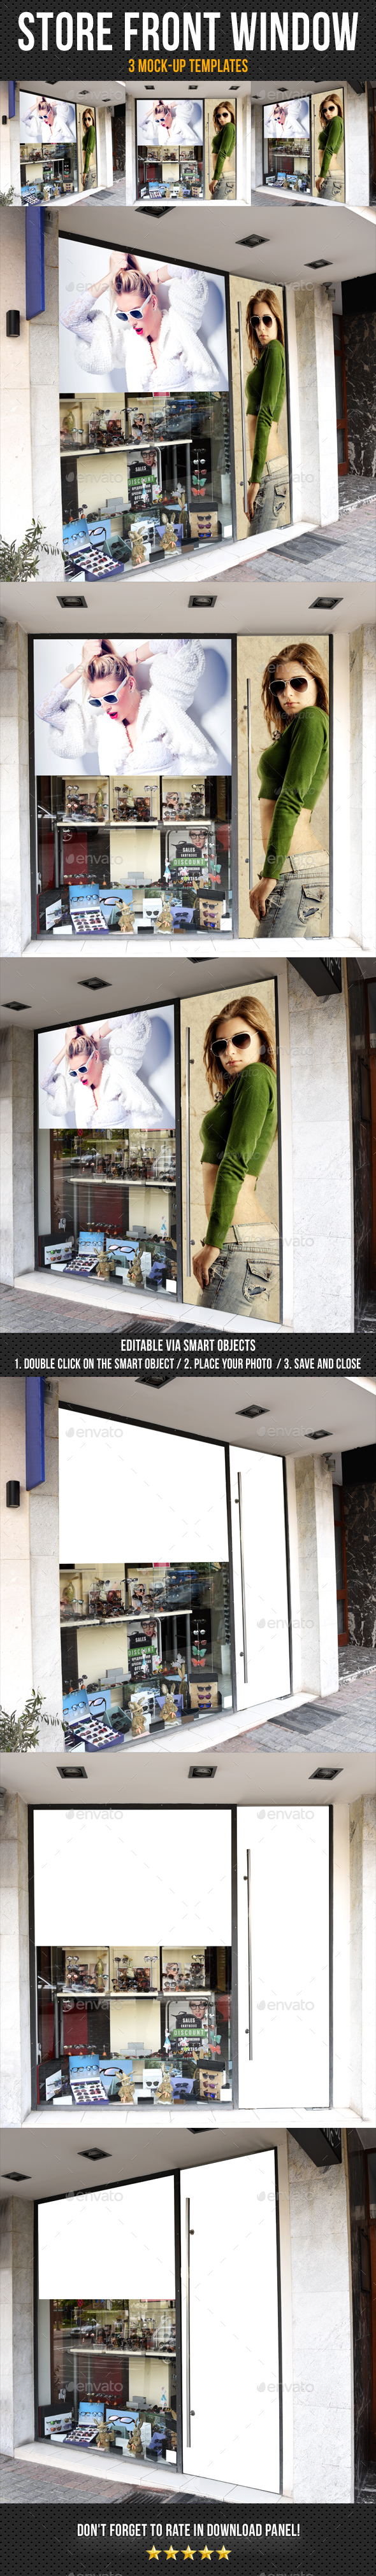 Store Front Window Mock-Up Pack 06 - Signage Print